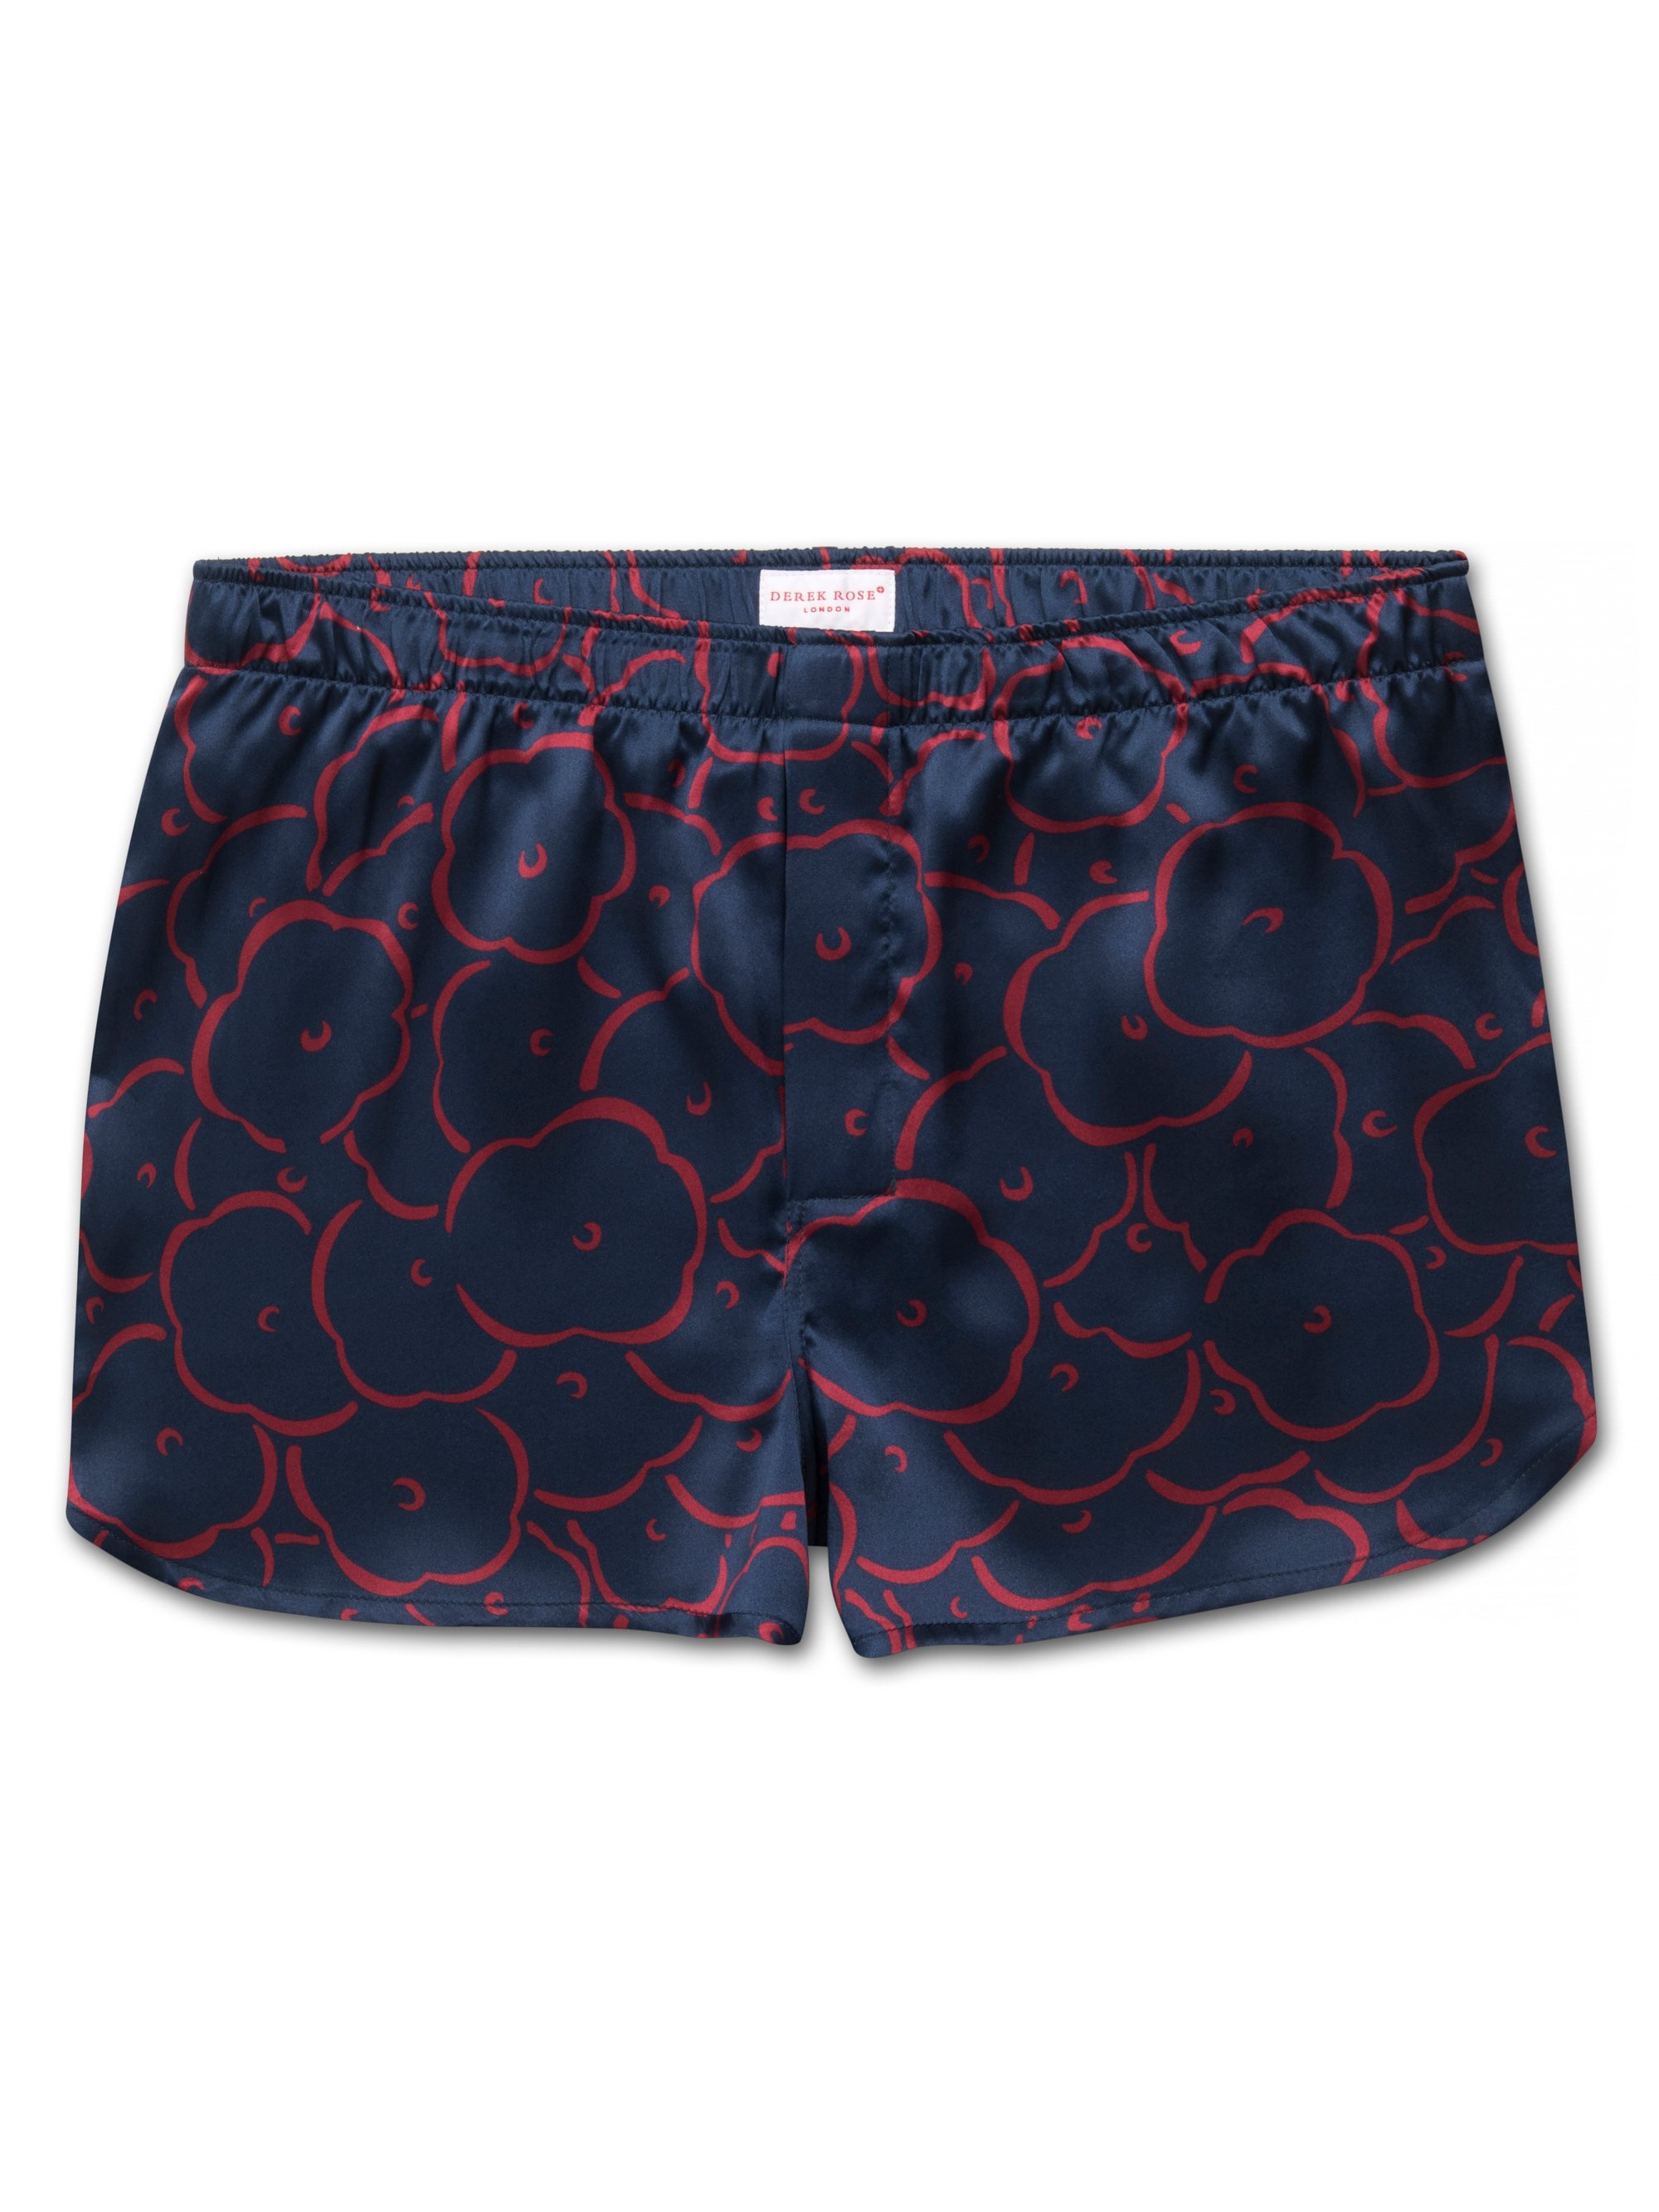 Men's Modern Fit Boxer Shorts Brindisi 53 Pure Silk Satin Navy